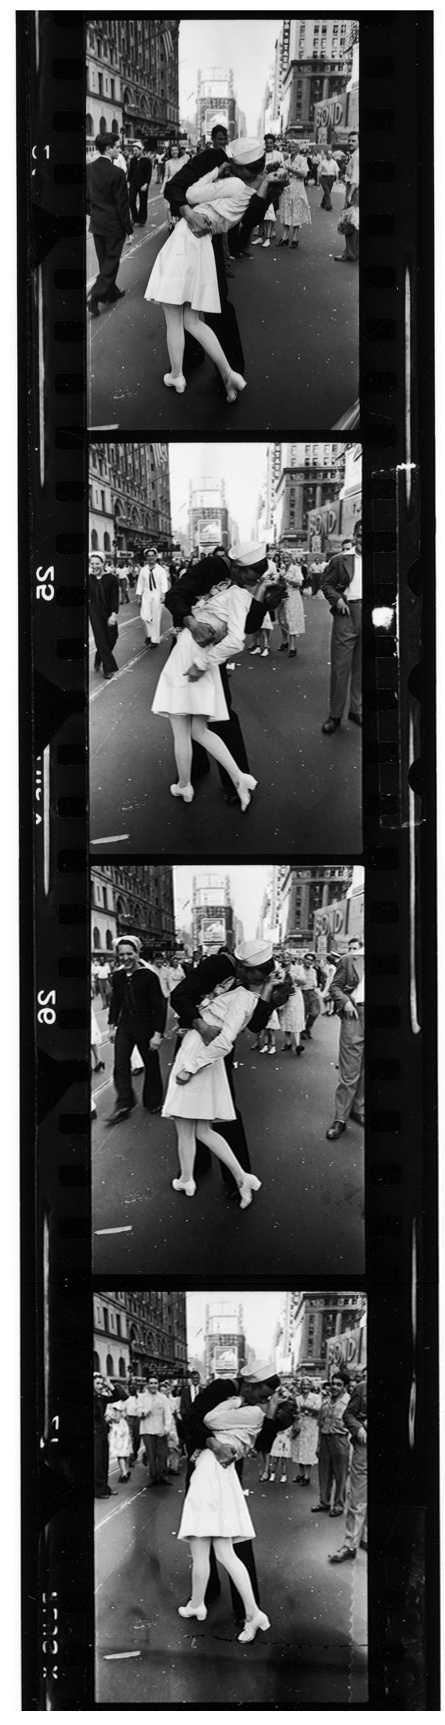 "Alfred Eisenstaedt - Time & Life Pictures/Getty Images...Caption from the August 27, 1945, issue of LIFE. ""In the middle of New York's Times Square a white-clad girl clutches her purse and skirt as an uninhibited sailor plants his lips squarely on hers.""°"